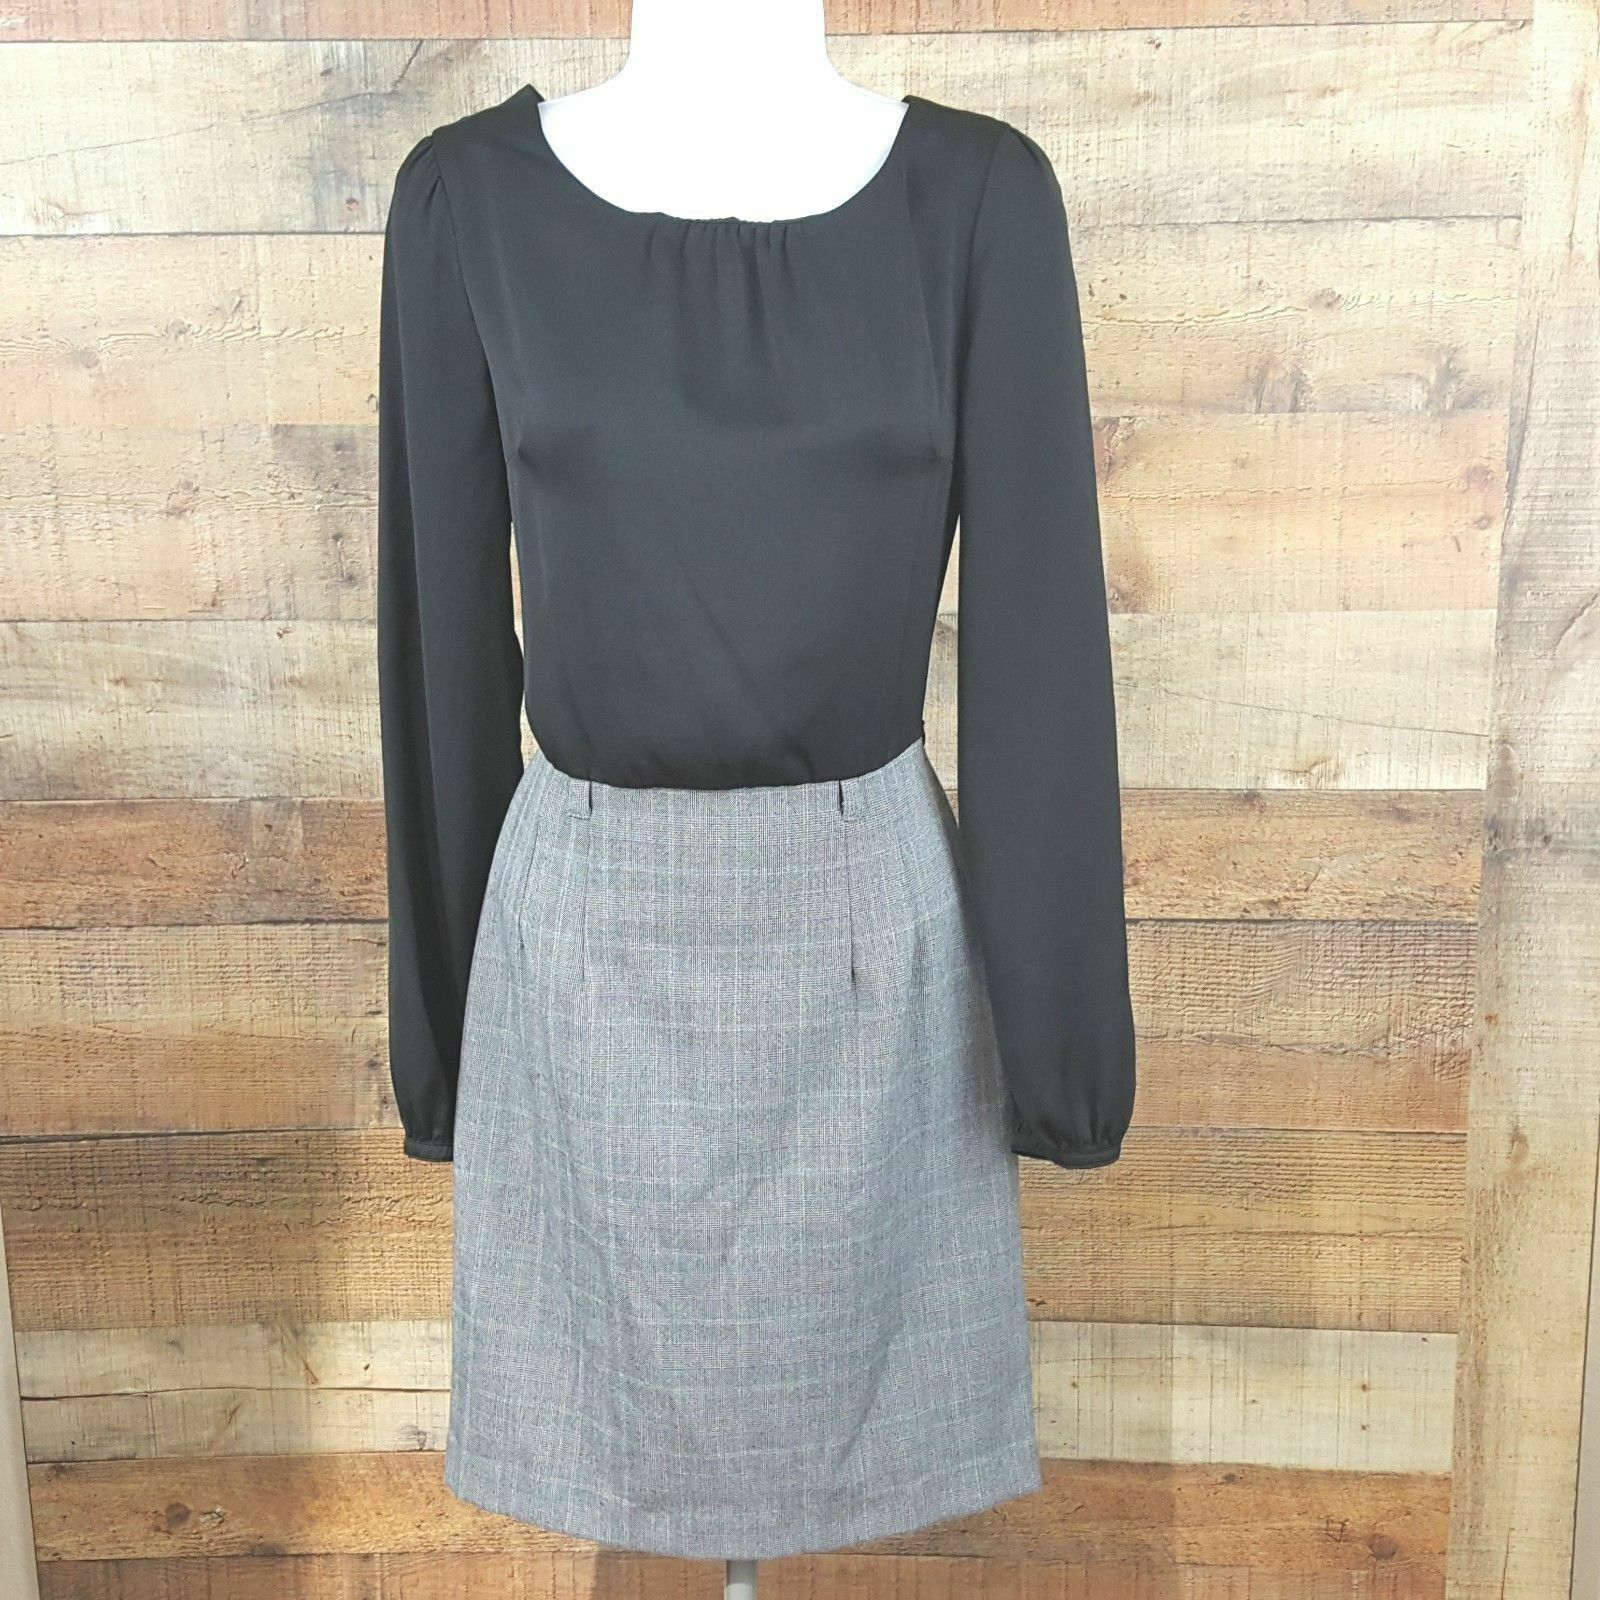 Forever 21 Essentials Dress Women's Size S Black Gray DB13